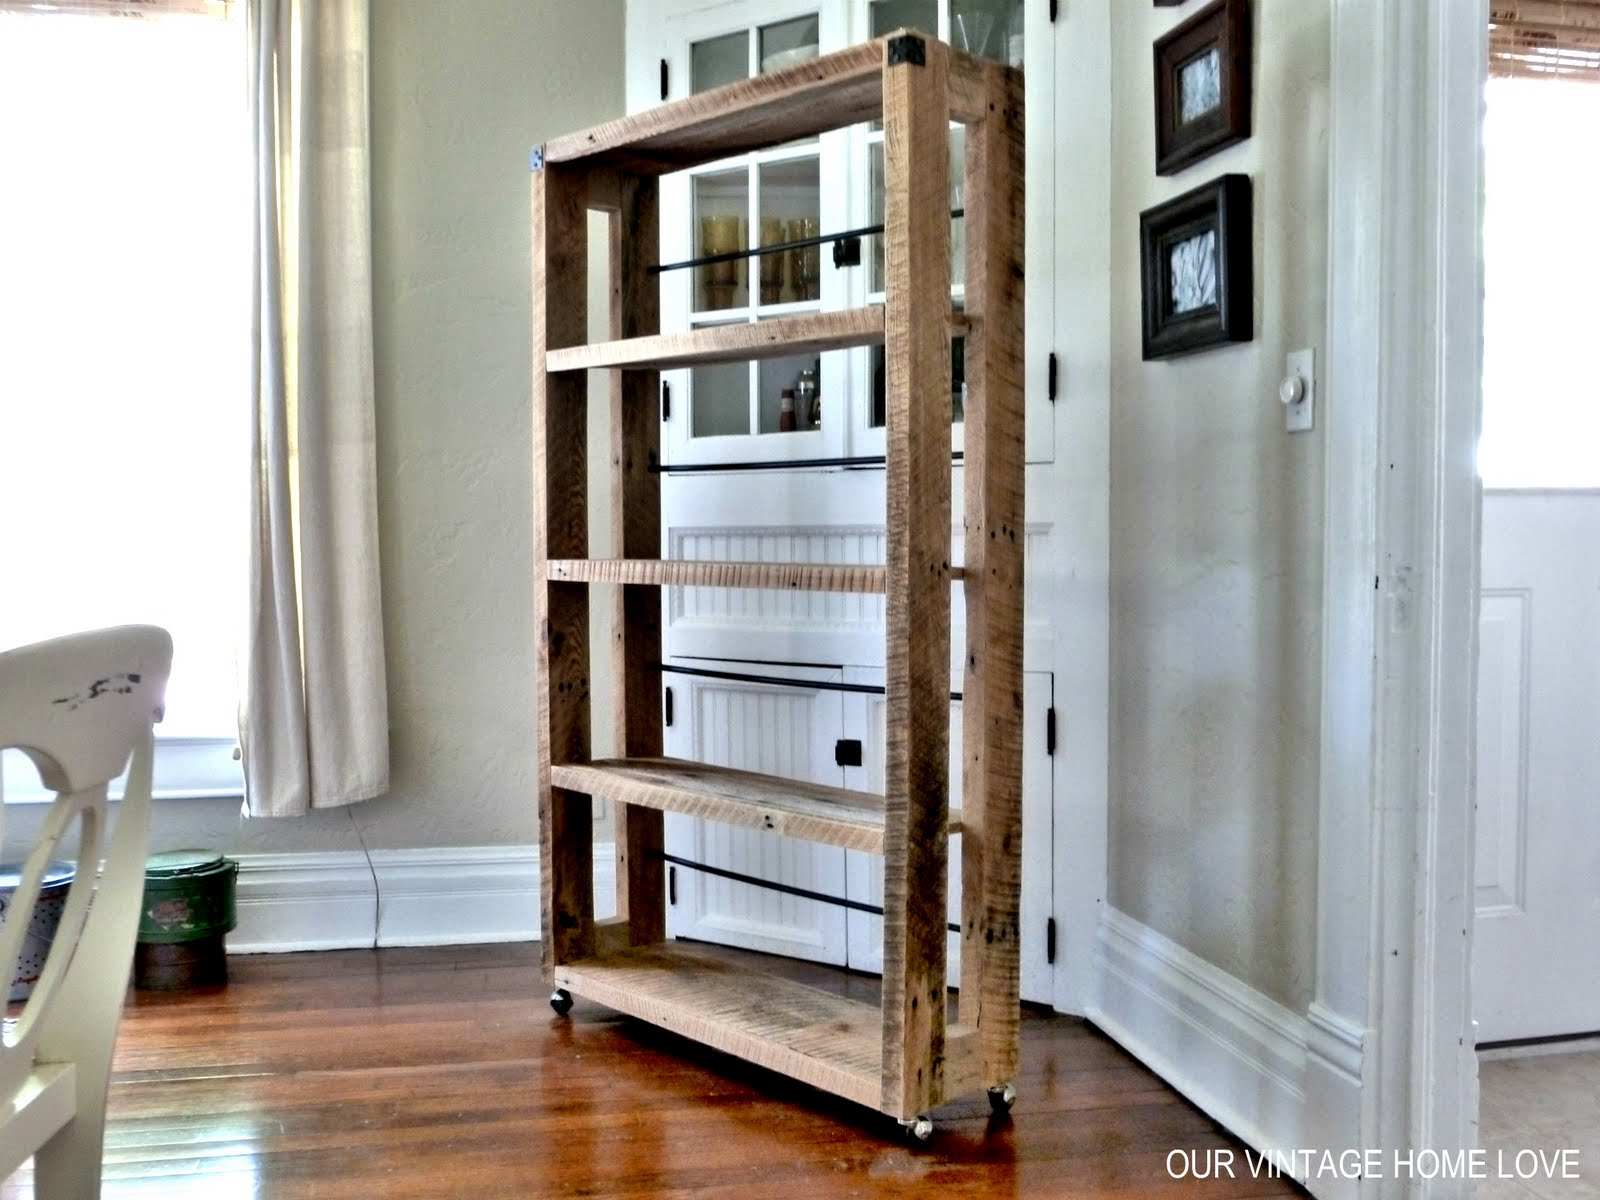 Our vintage home love salvaged wood shelving - Etagere avec palette bois ...